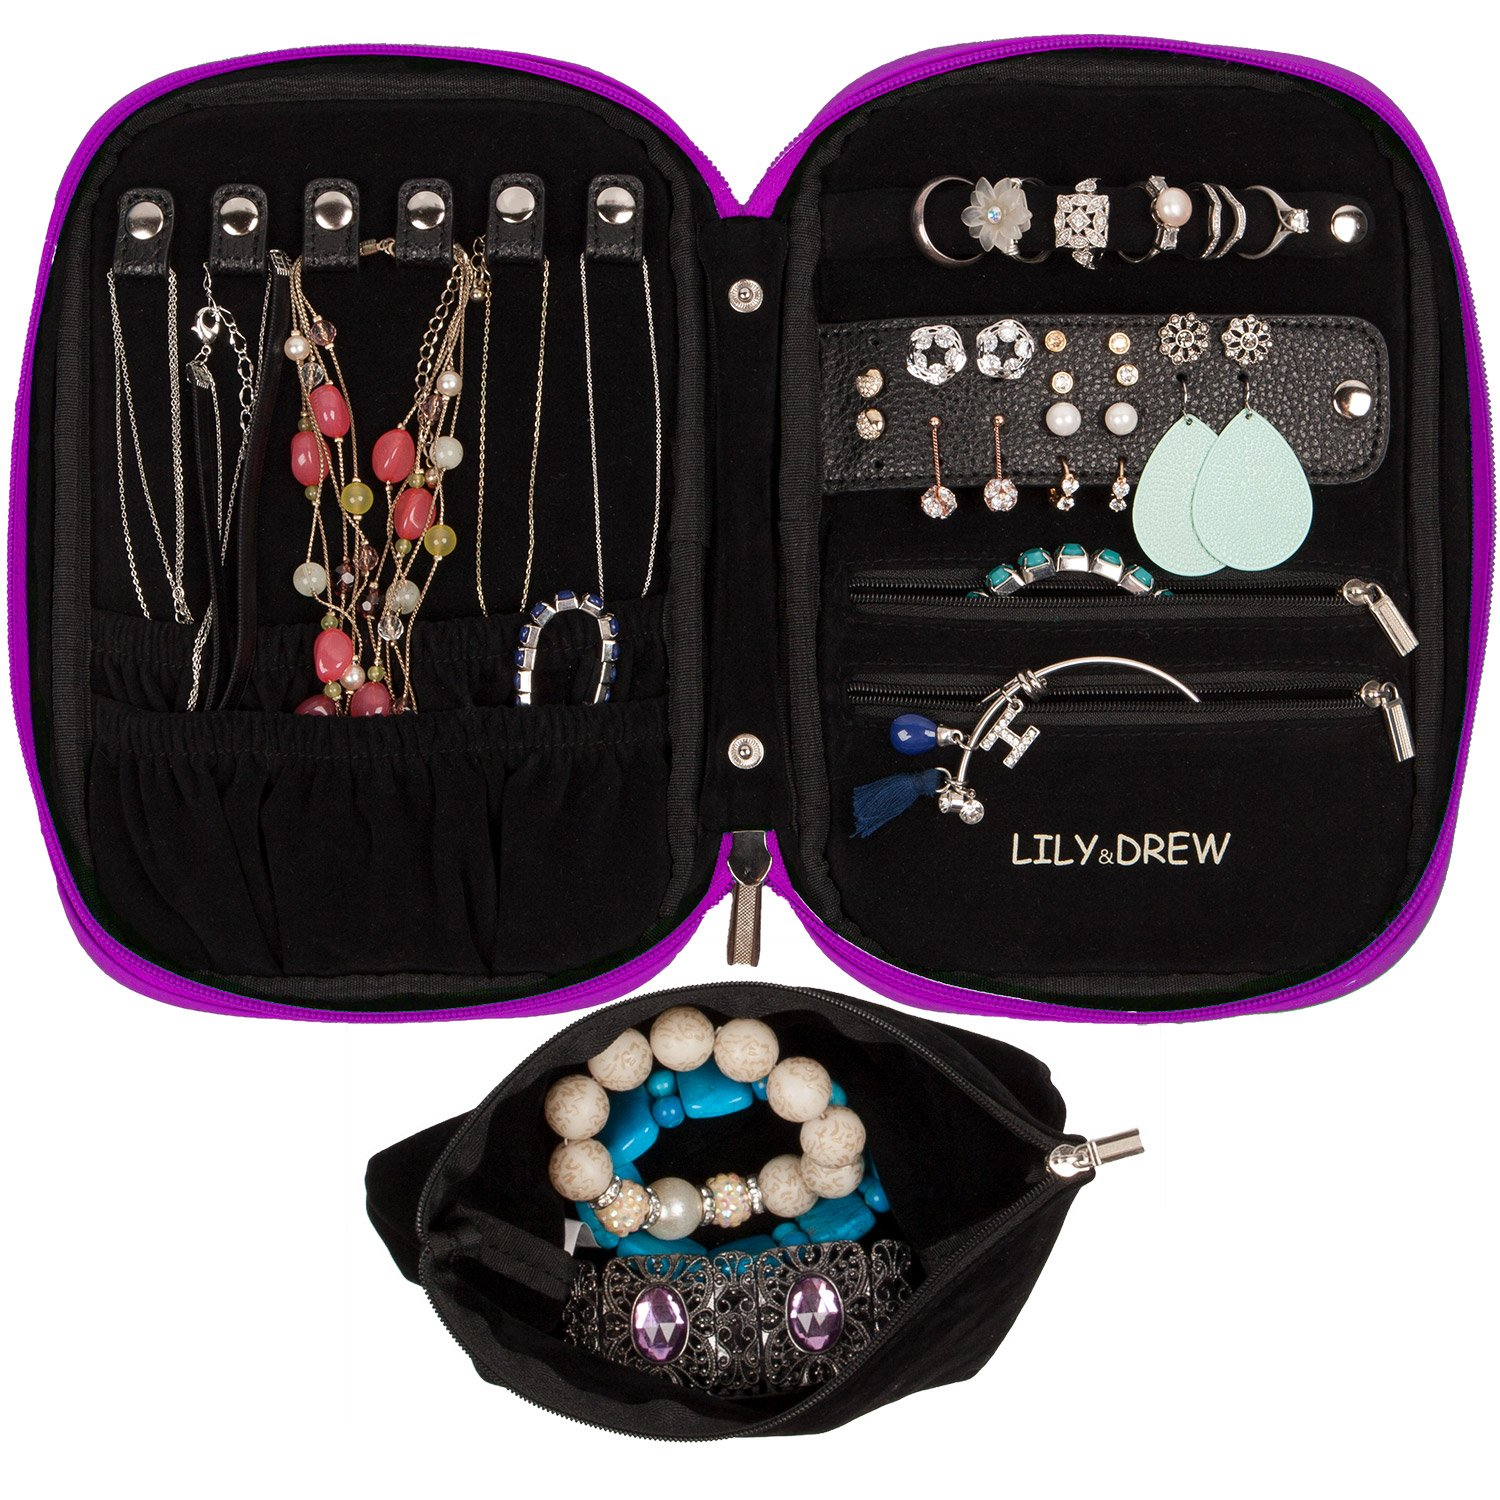 Lily & Drew Travel Jewelry Storage Carrying Case Jewelry Organizer with Removable Pouch (V1 Dark Purple) by Lily & Drew